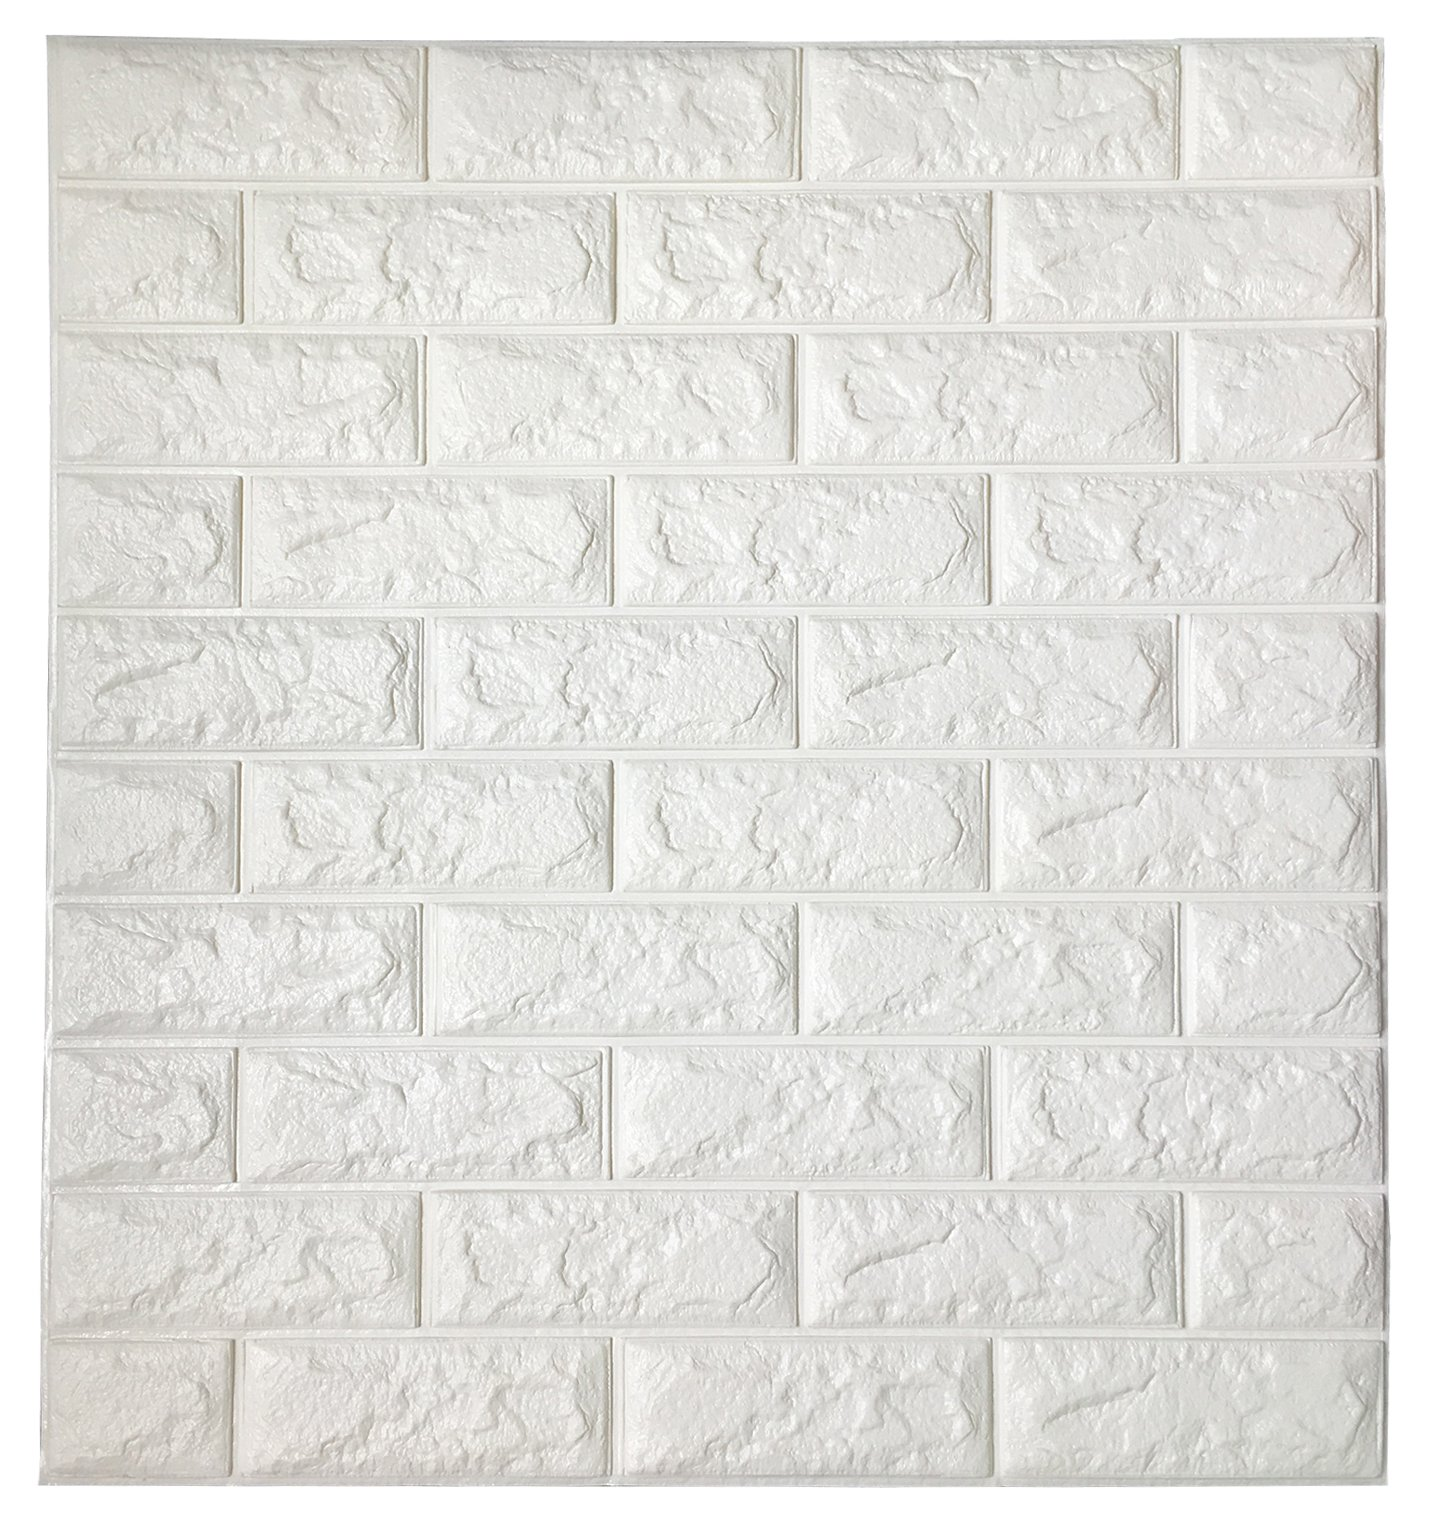 Art3d Peel and Stick 3D Wall Panels for TV Walls/Sofa Background Wall Decor, White Brick Wallpaper